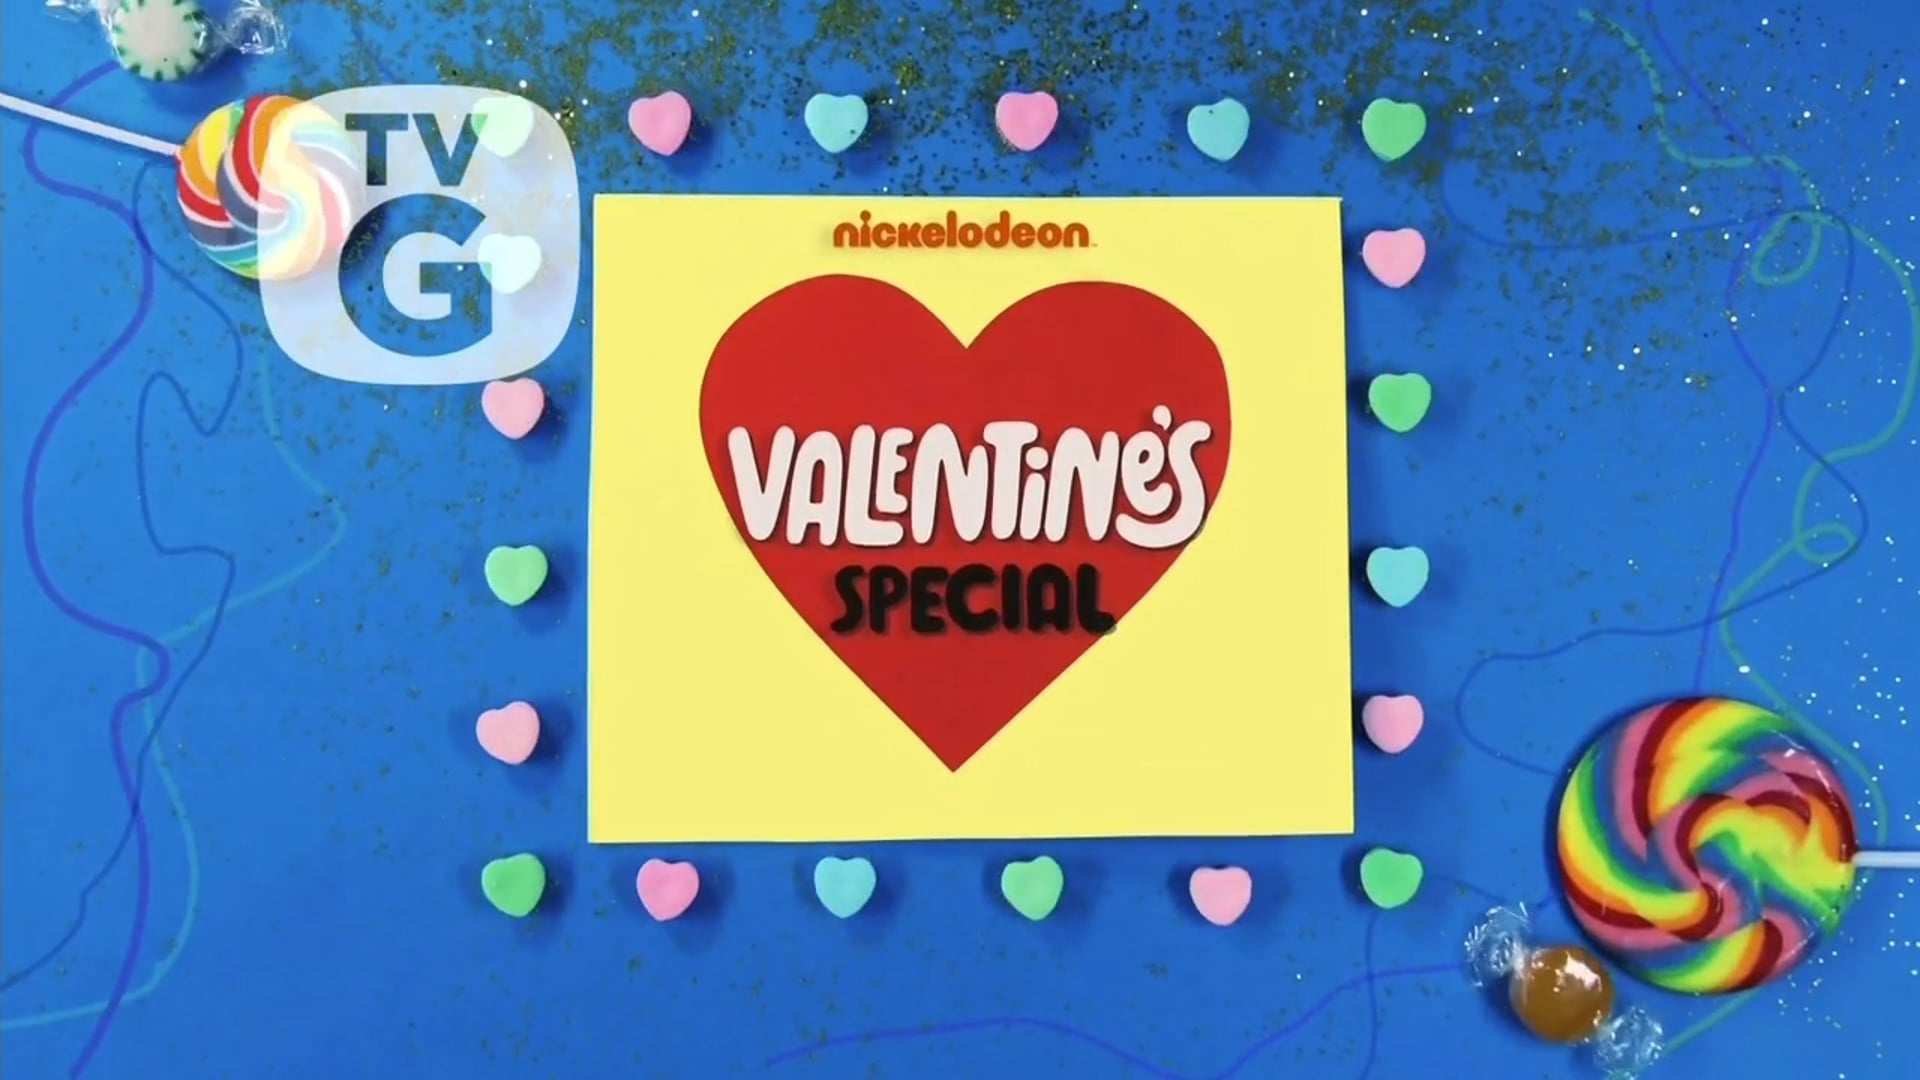 Nickelodeon's Not So Valentine's Special-Open